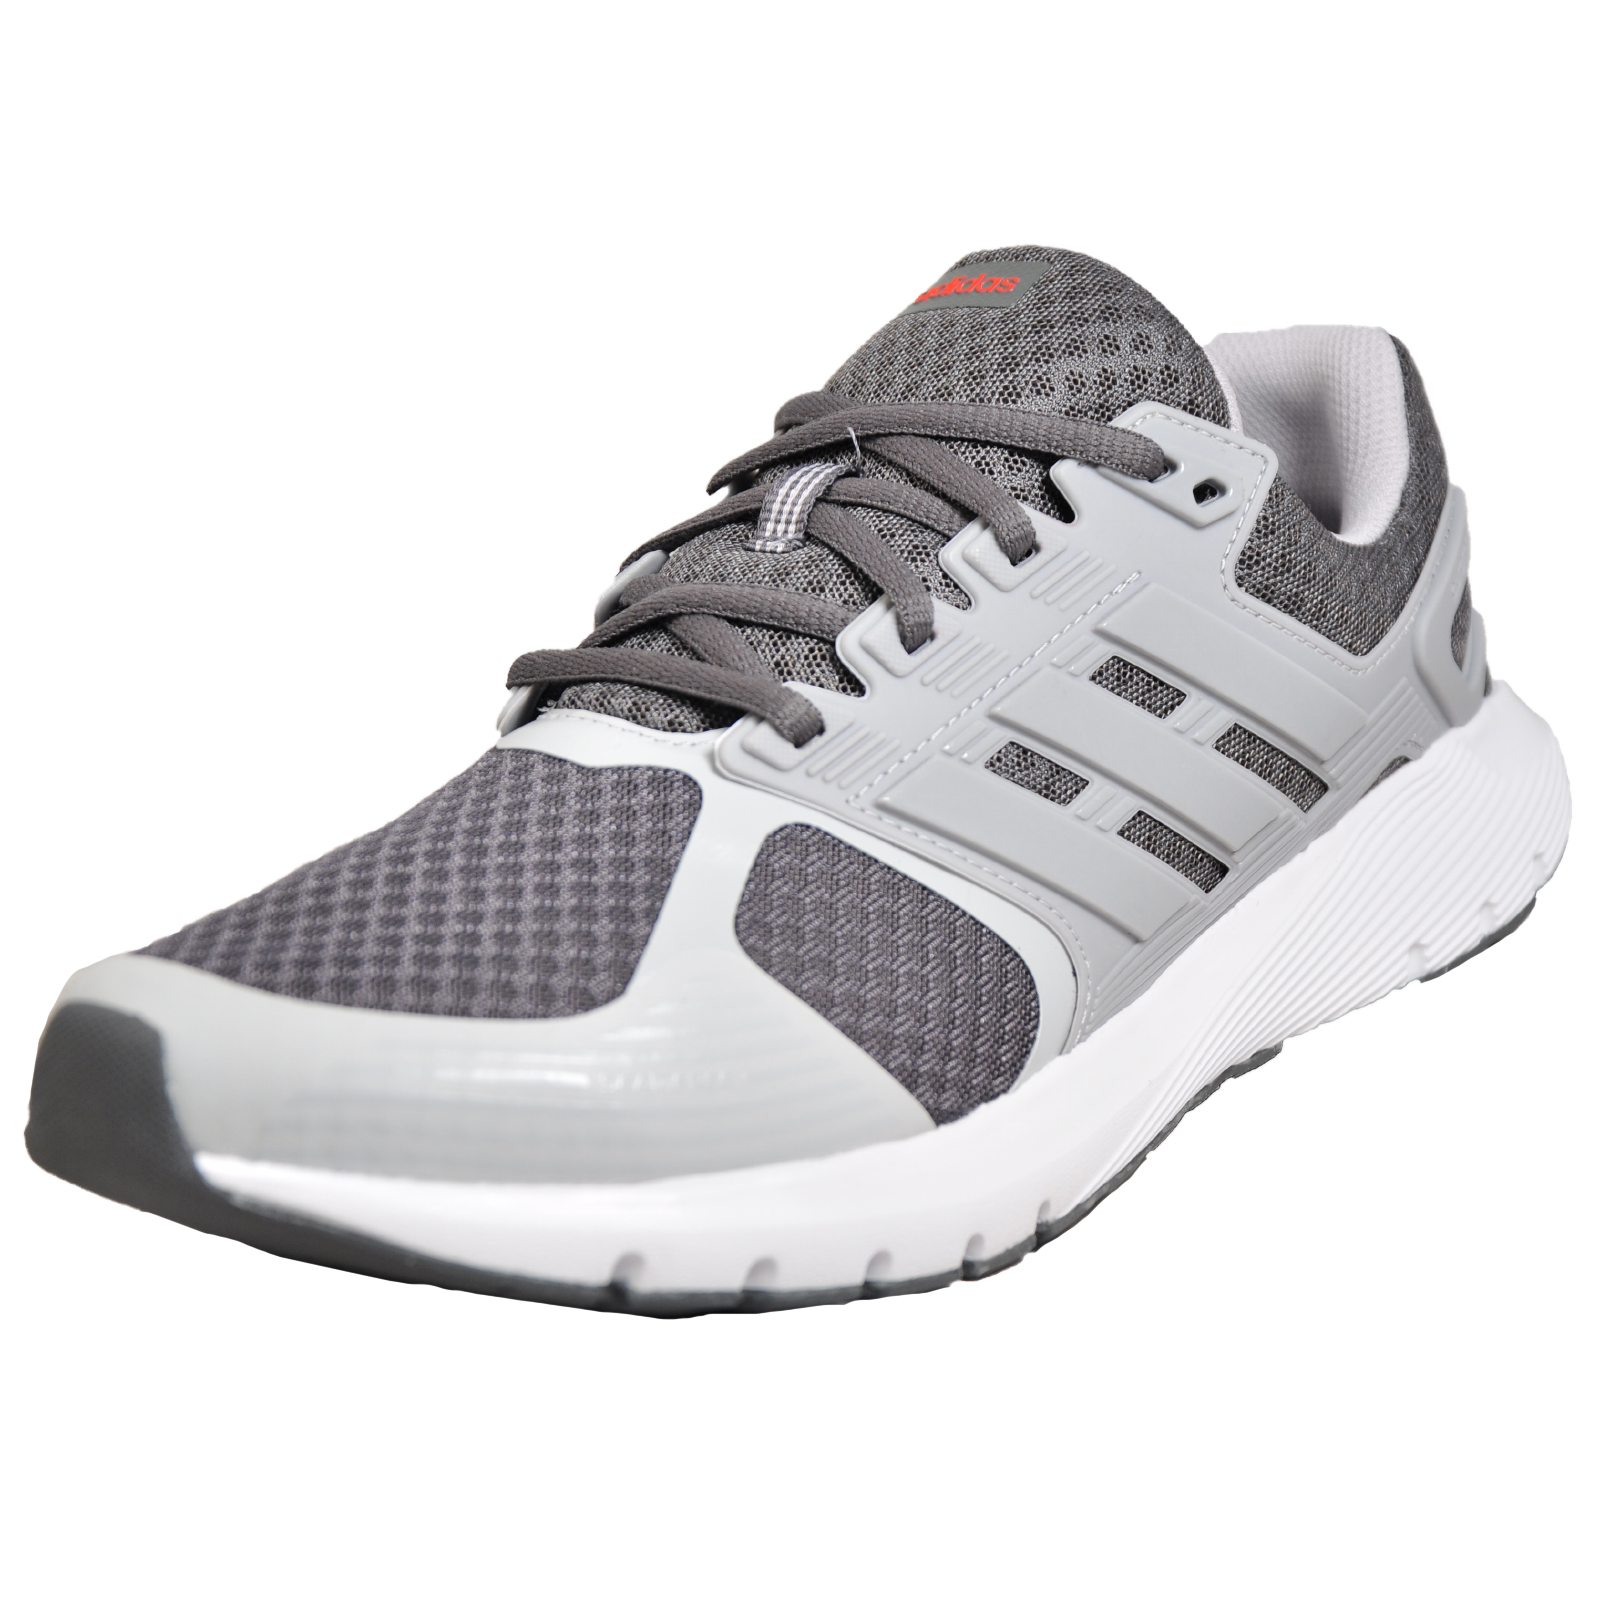 pretty nice details for 100% authentic Details about Adidas Duramo 8 Mens Running Shoes Fitness Gym Trainers Grey